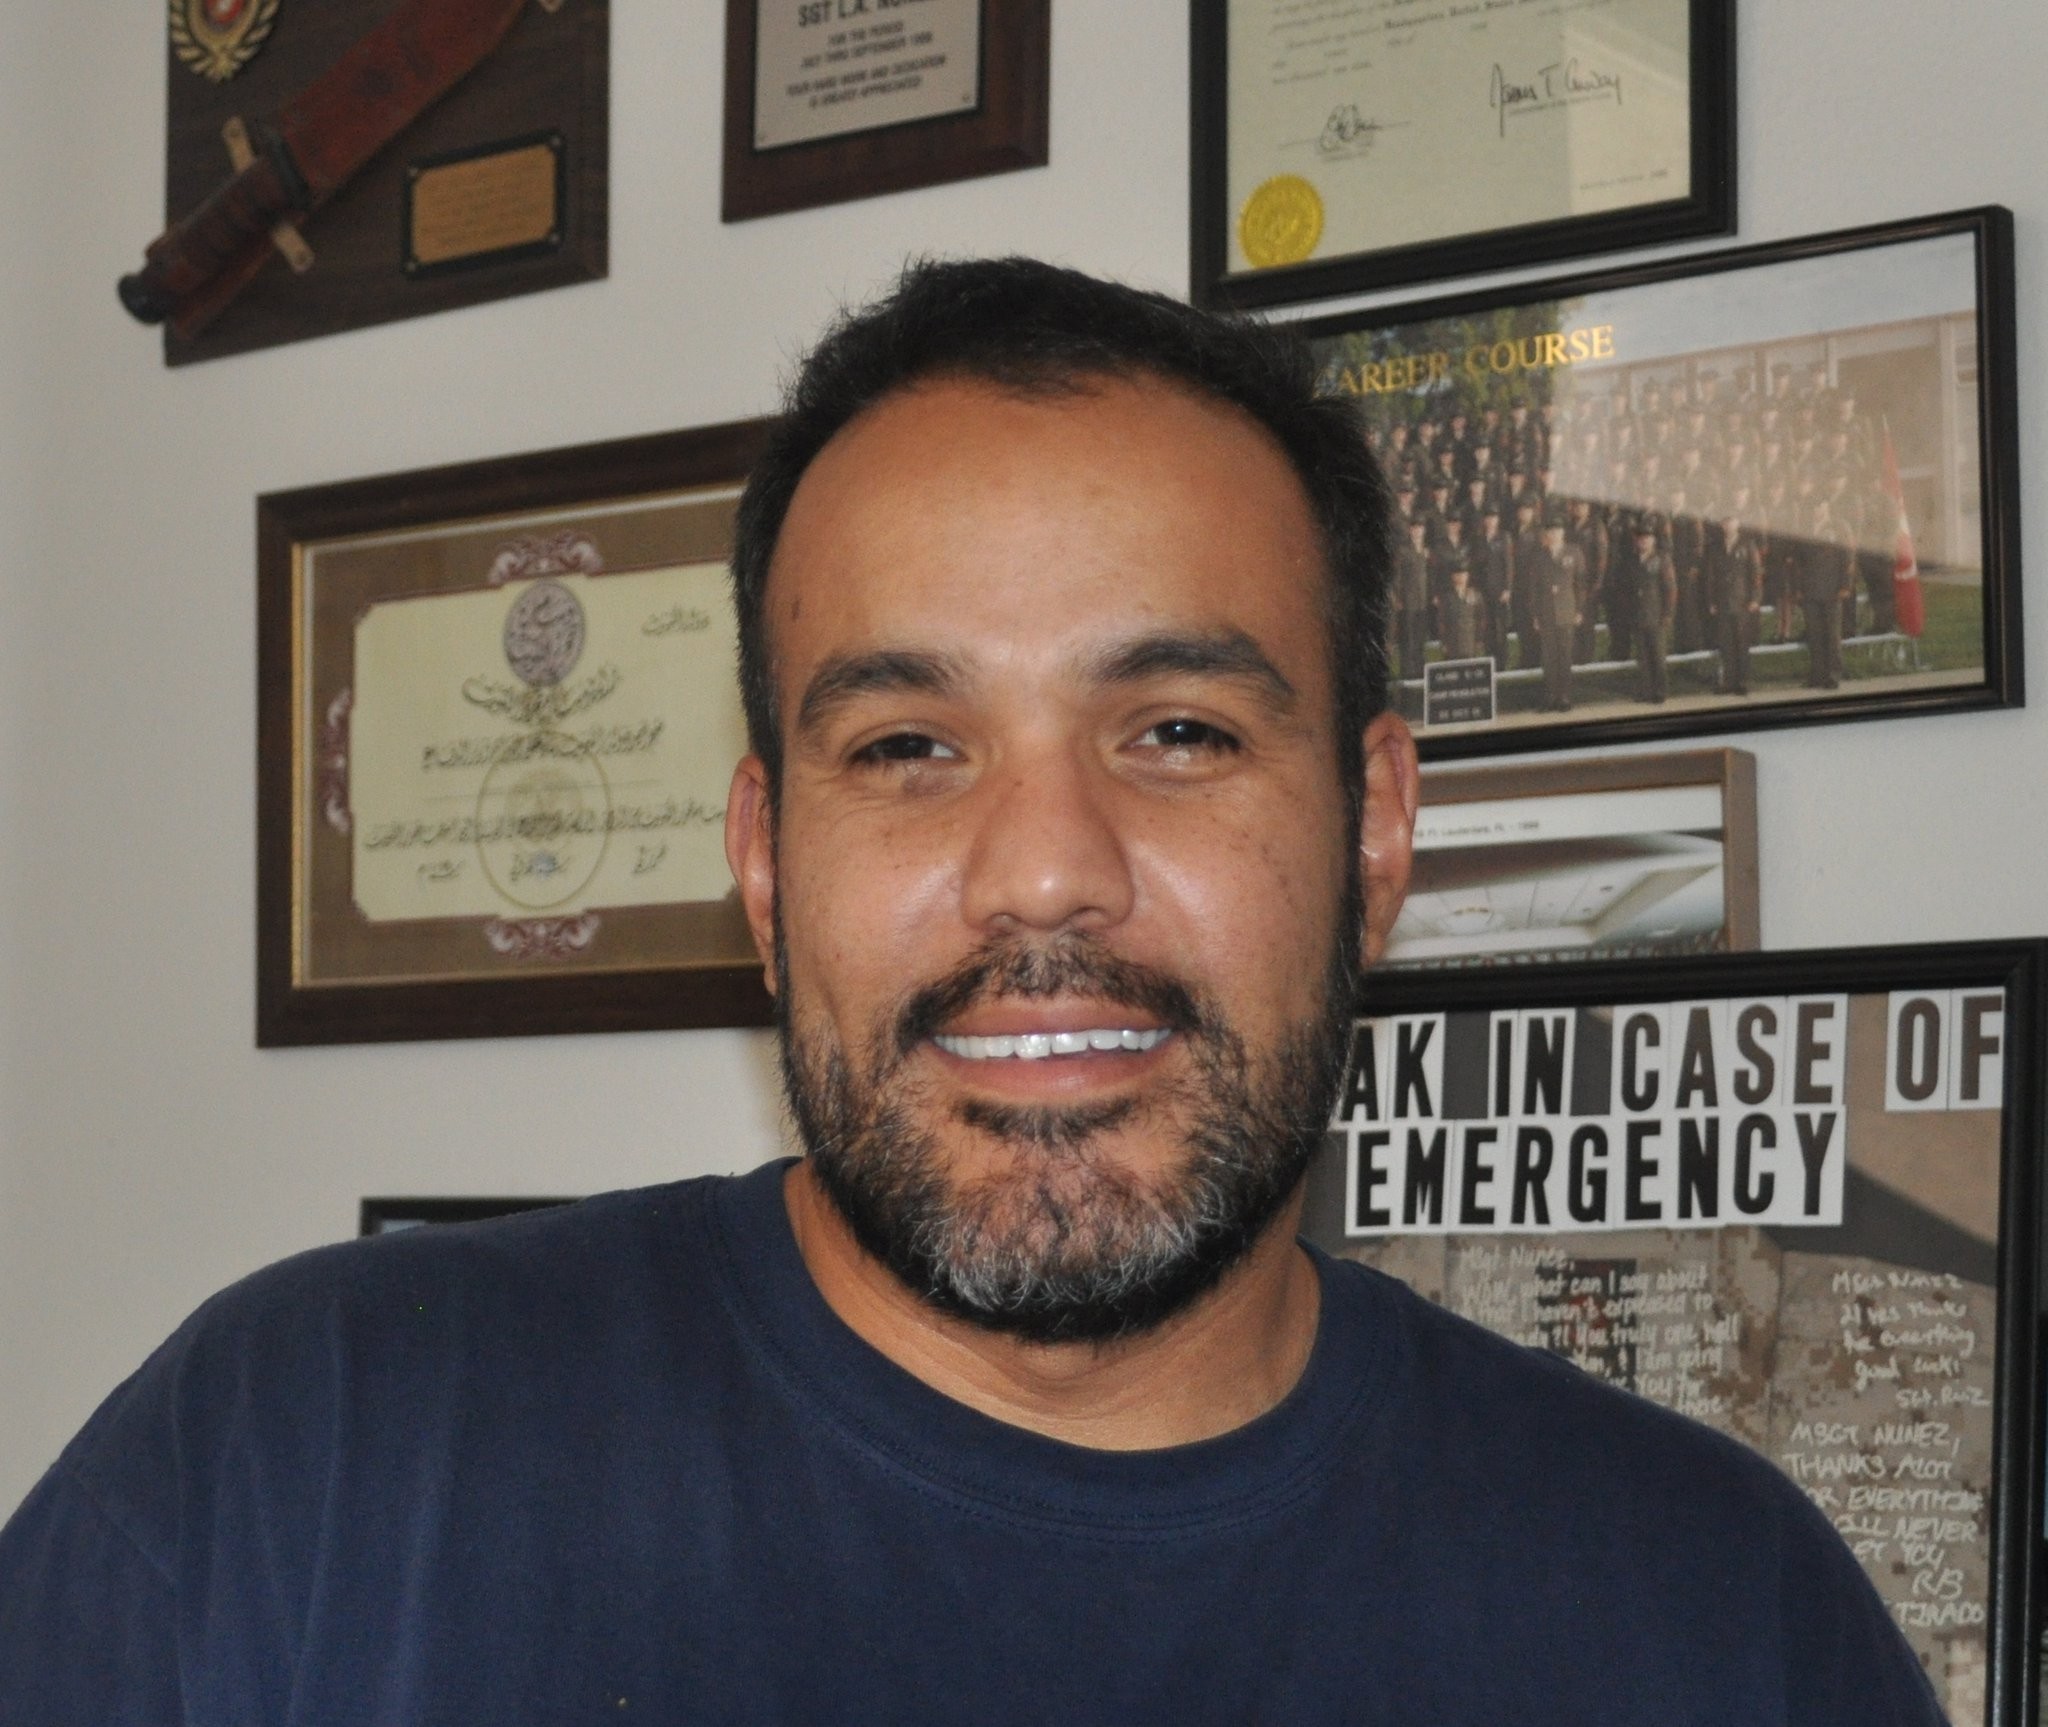 Nunez with some of his awards in the background.